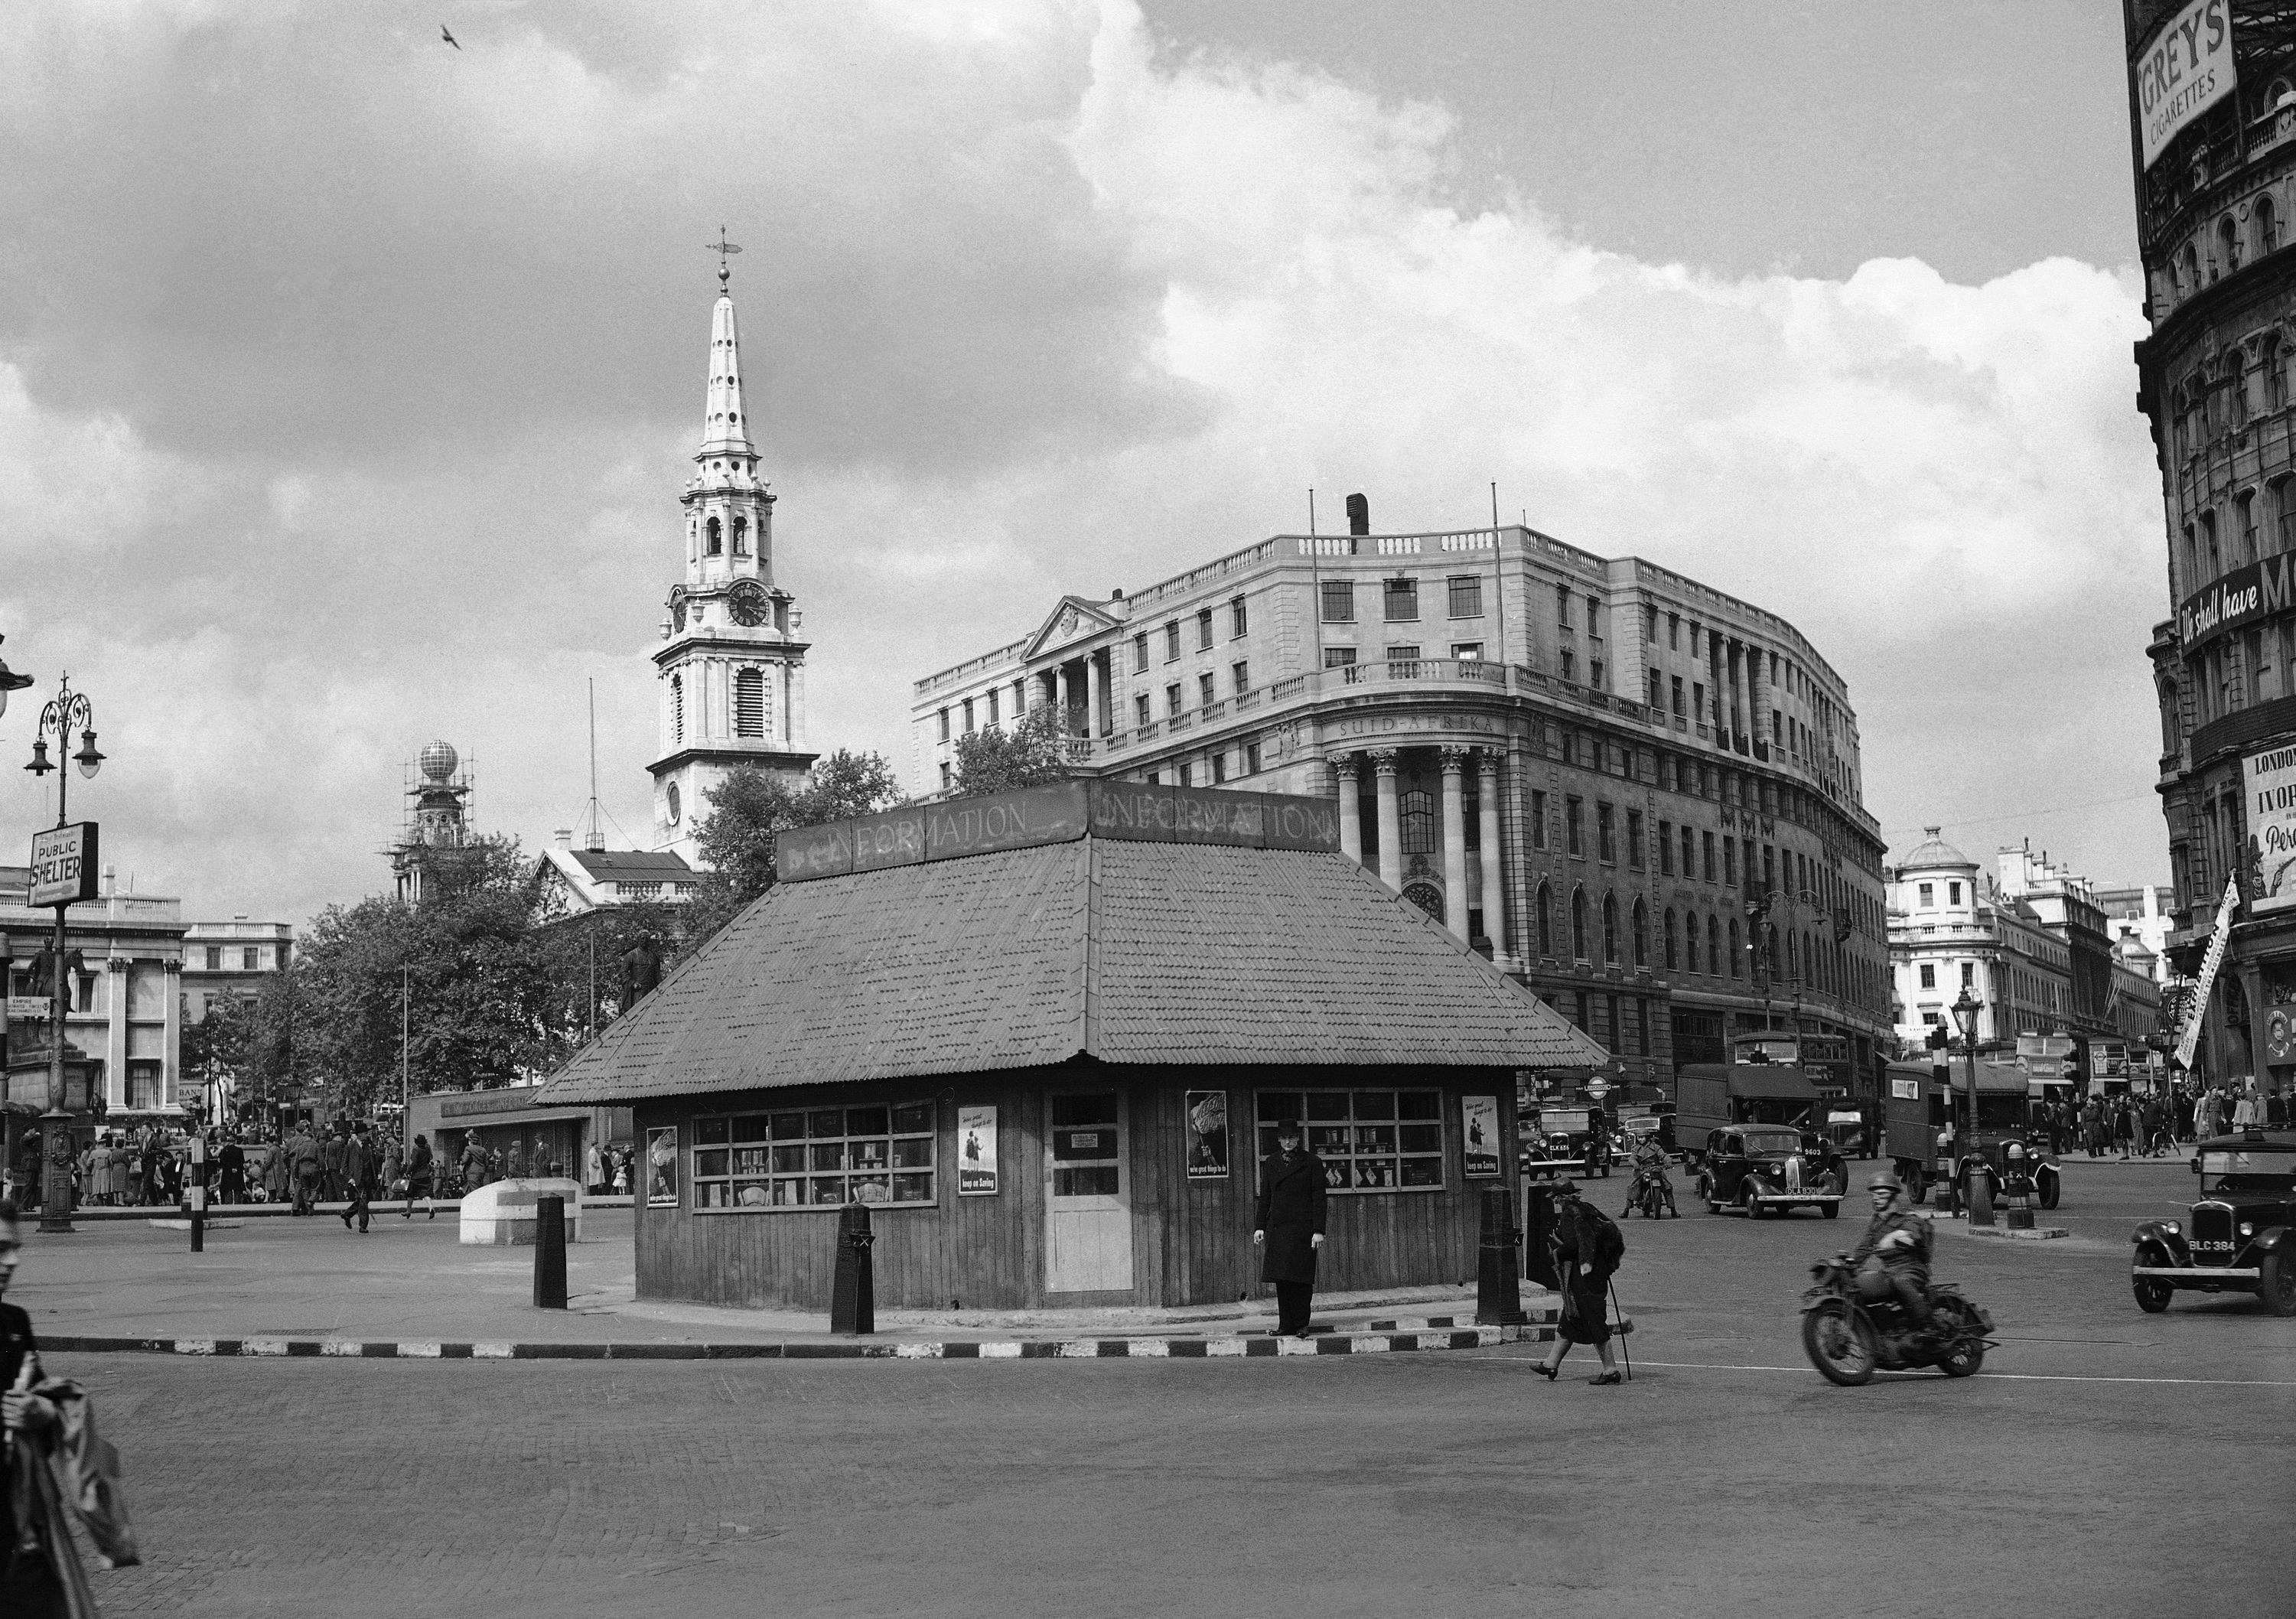 An Information bureau in Trafalgar Square  brought hundreds of visitors across the street to seek guidance which they did not get. It was one of the camouflaged concrete pillboxes to be used in case of invasion.